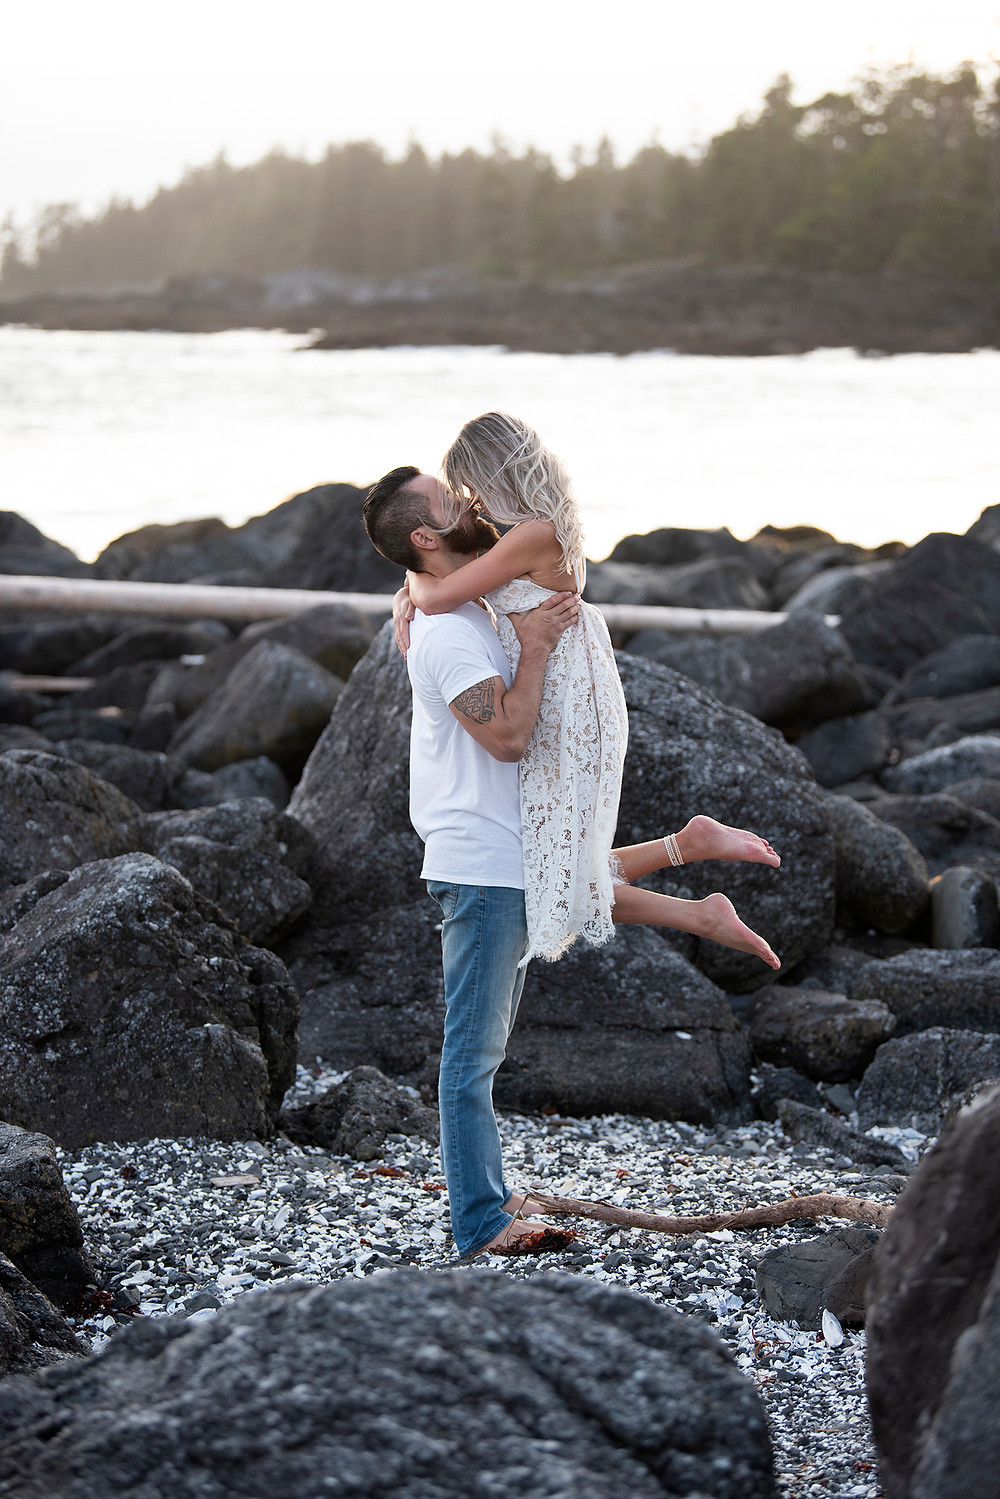 Man lifts woman up for a kiss during their engagement photos in Ucluelet. Photographed by Tofino photographer Kaitlyn Shea.